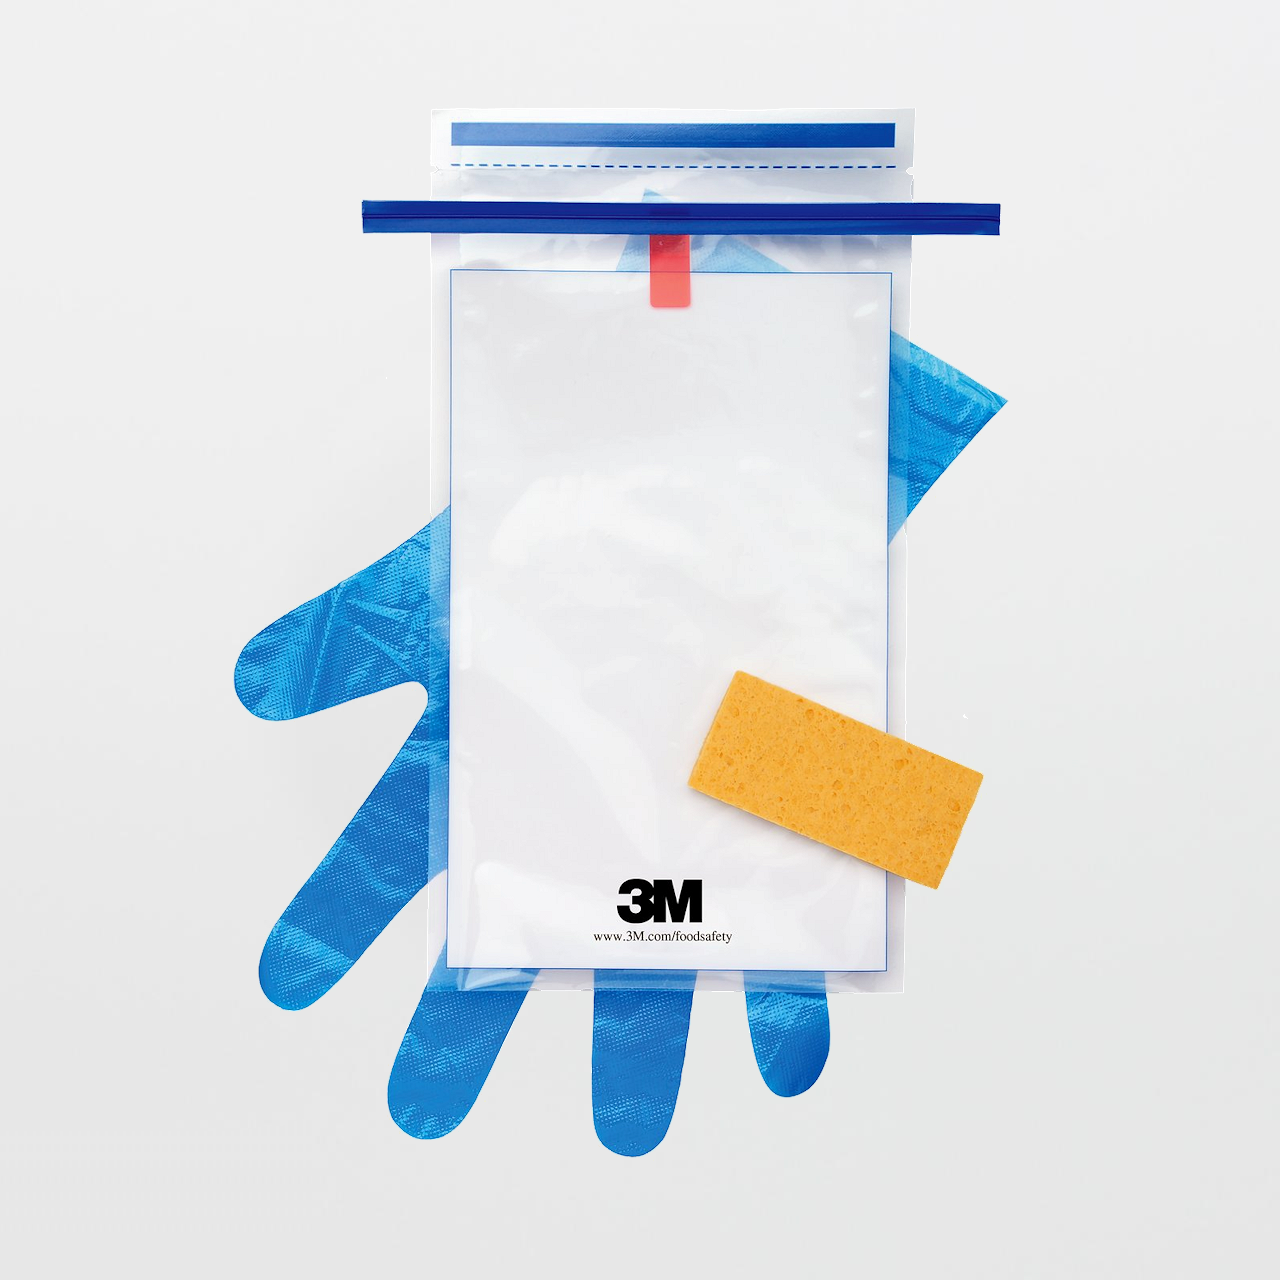 3m Hydrated Sponge With 10 Ml Letheen Broth And Gloves